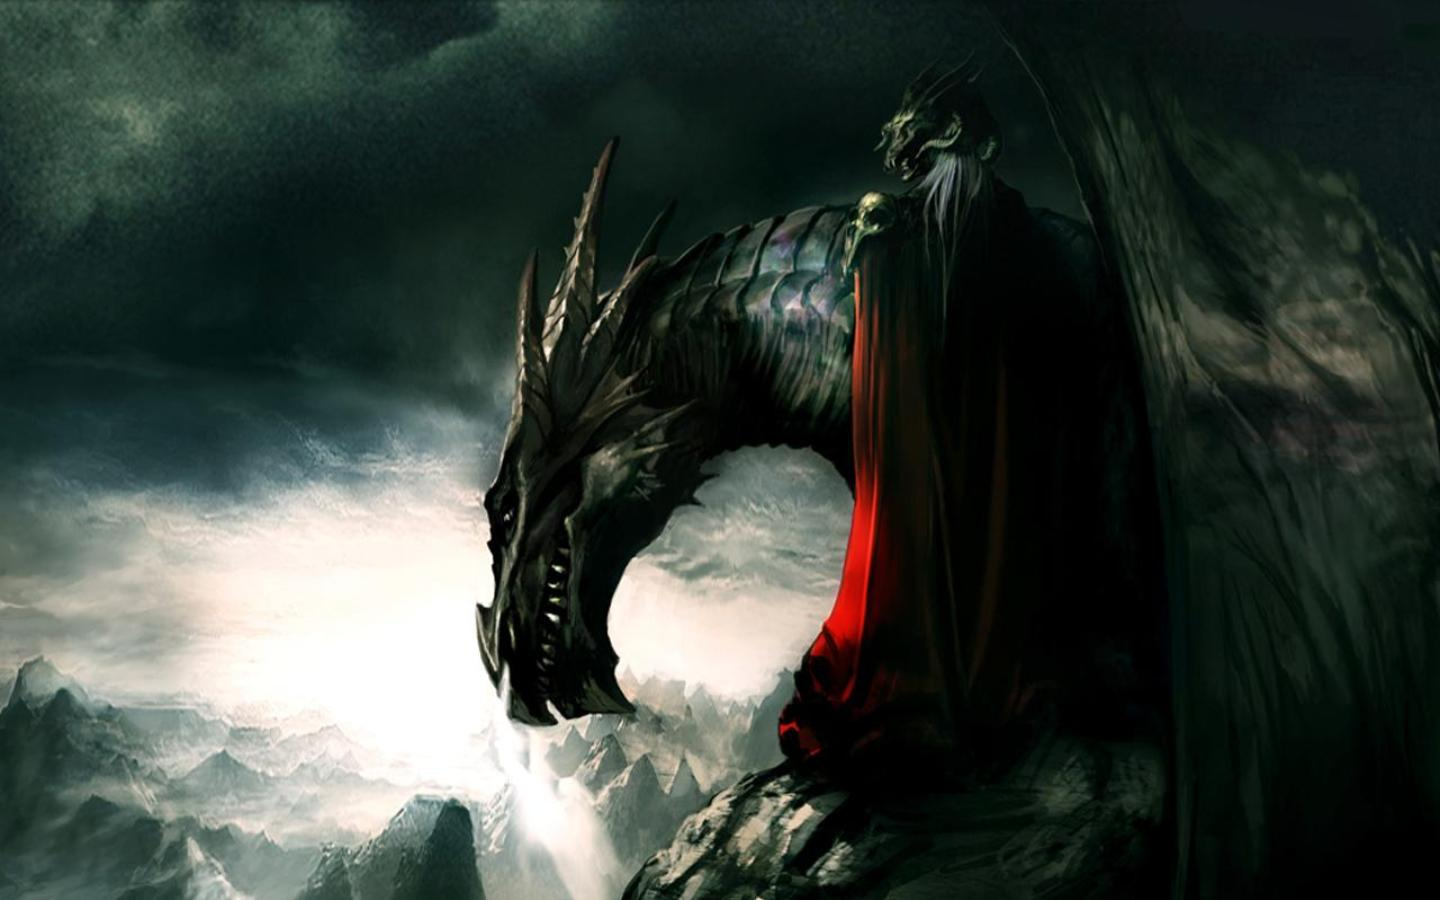 dragon hd wallpapers backgrounds wallpaper 1440x900